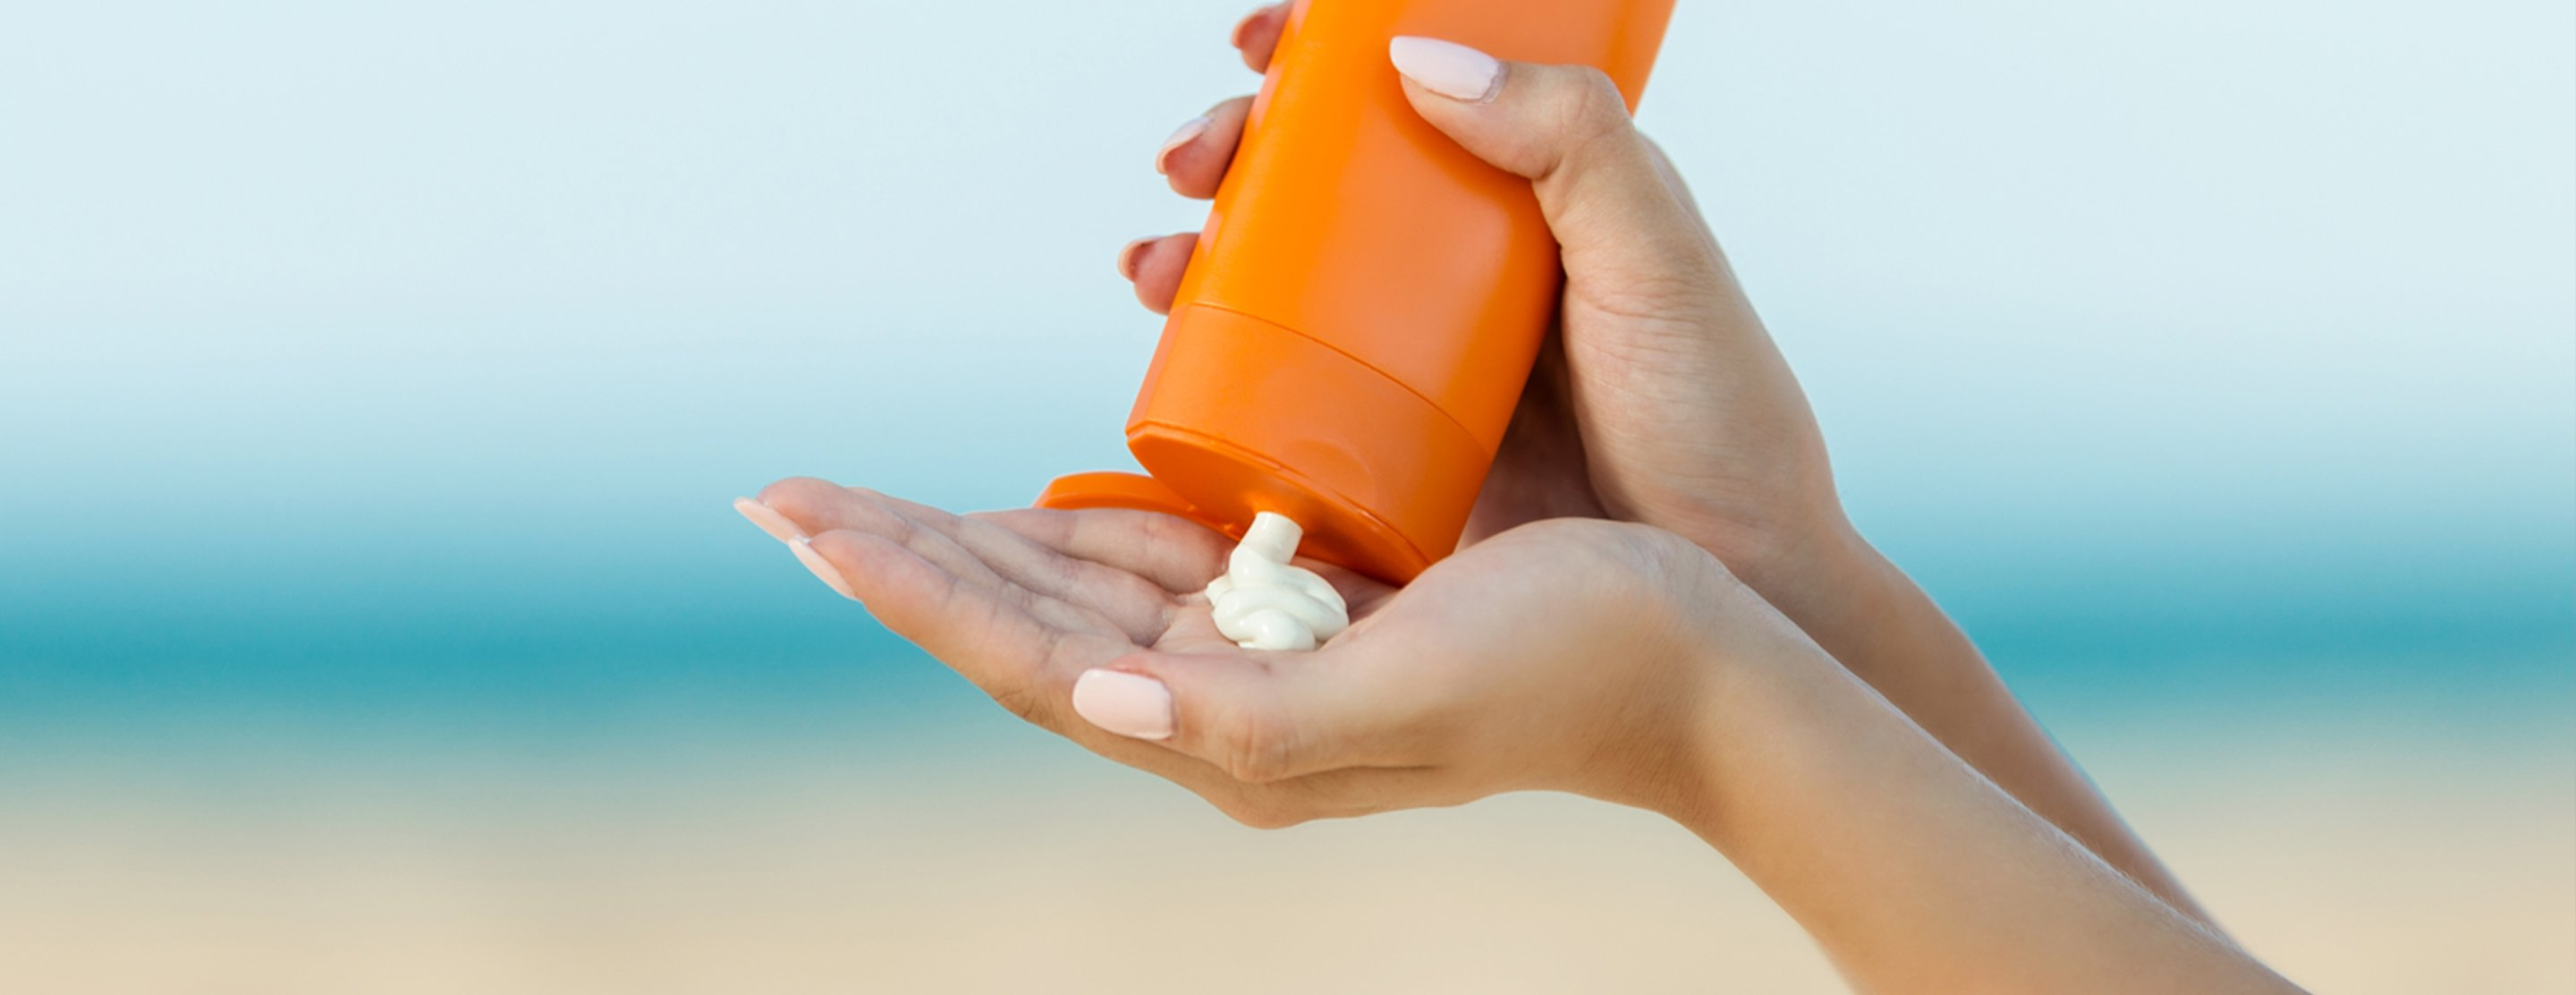 Sunscreen for Skin Cancer Prevention   Patient Education   UCSF Health